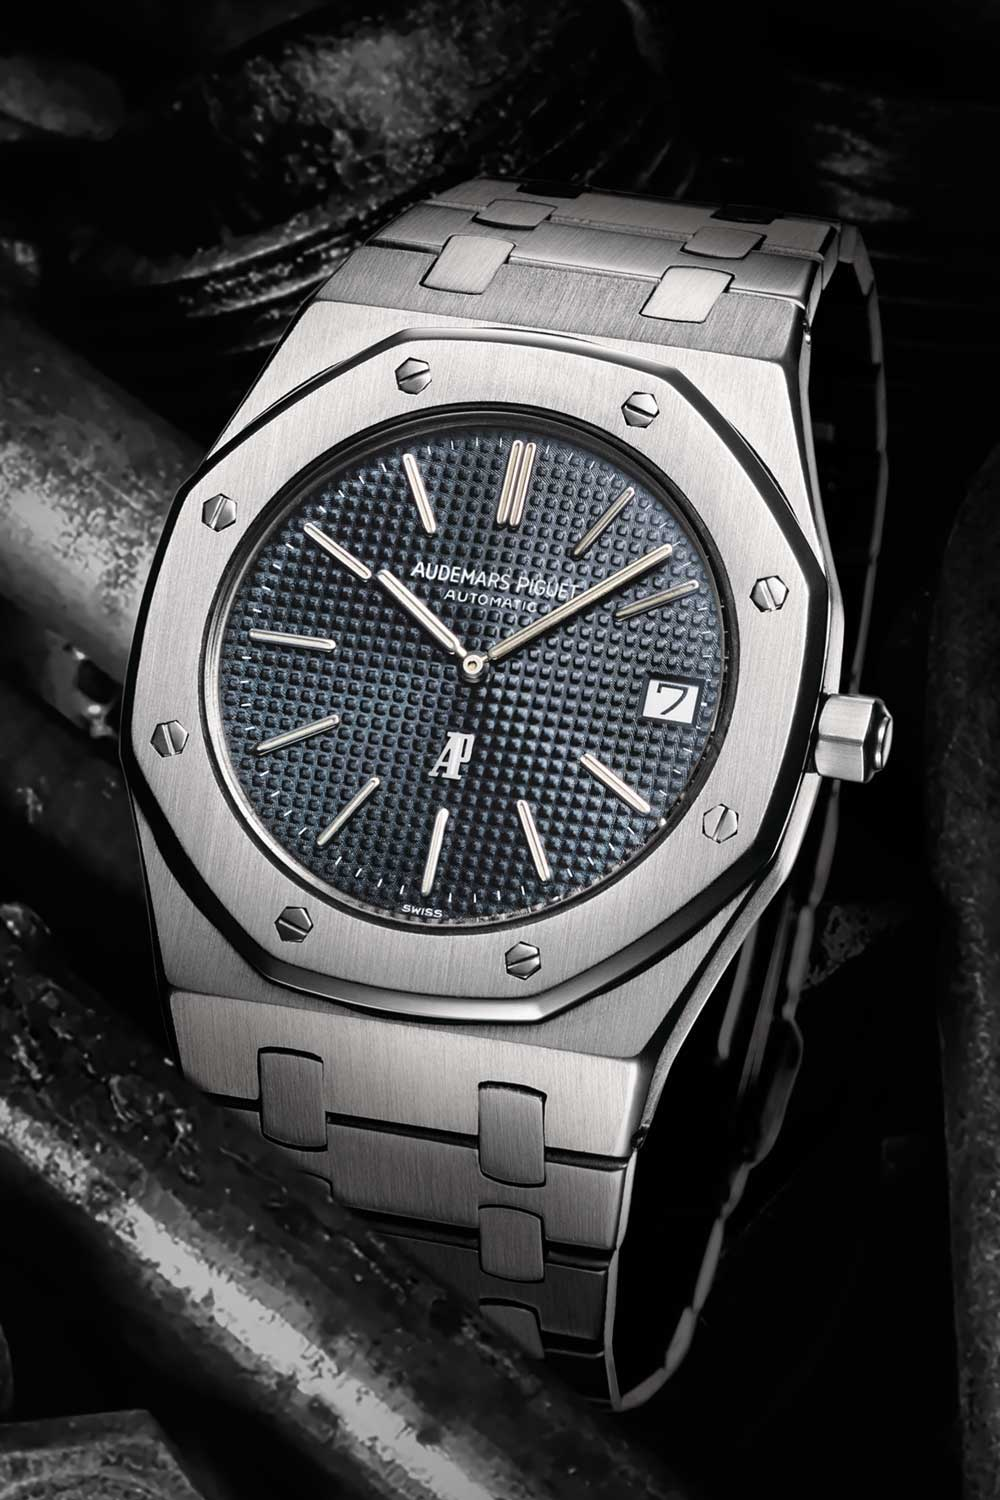 Gérald Genta ushered in the concept of a luxury sports watch in steel with the Audemars Piguet Royal Oak in 1972